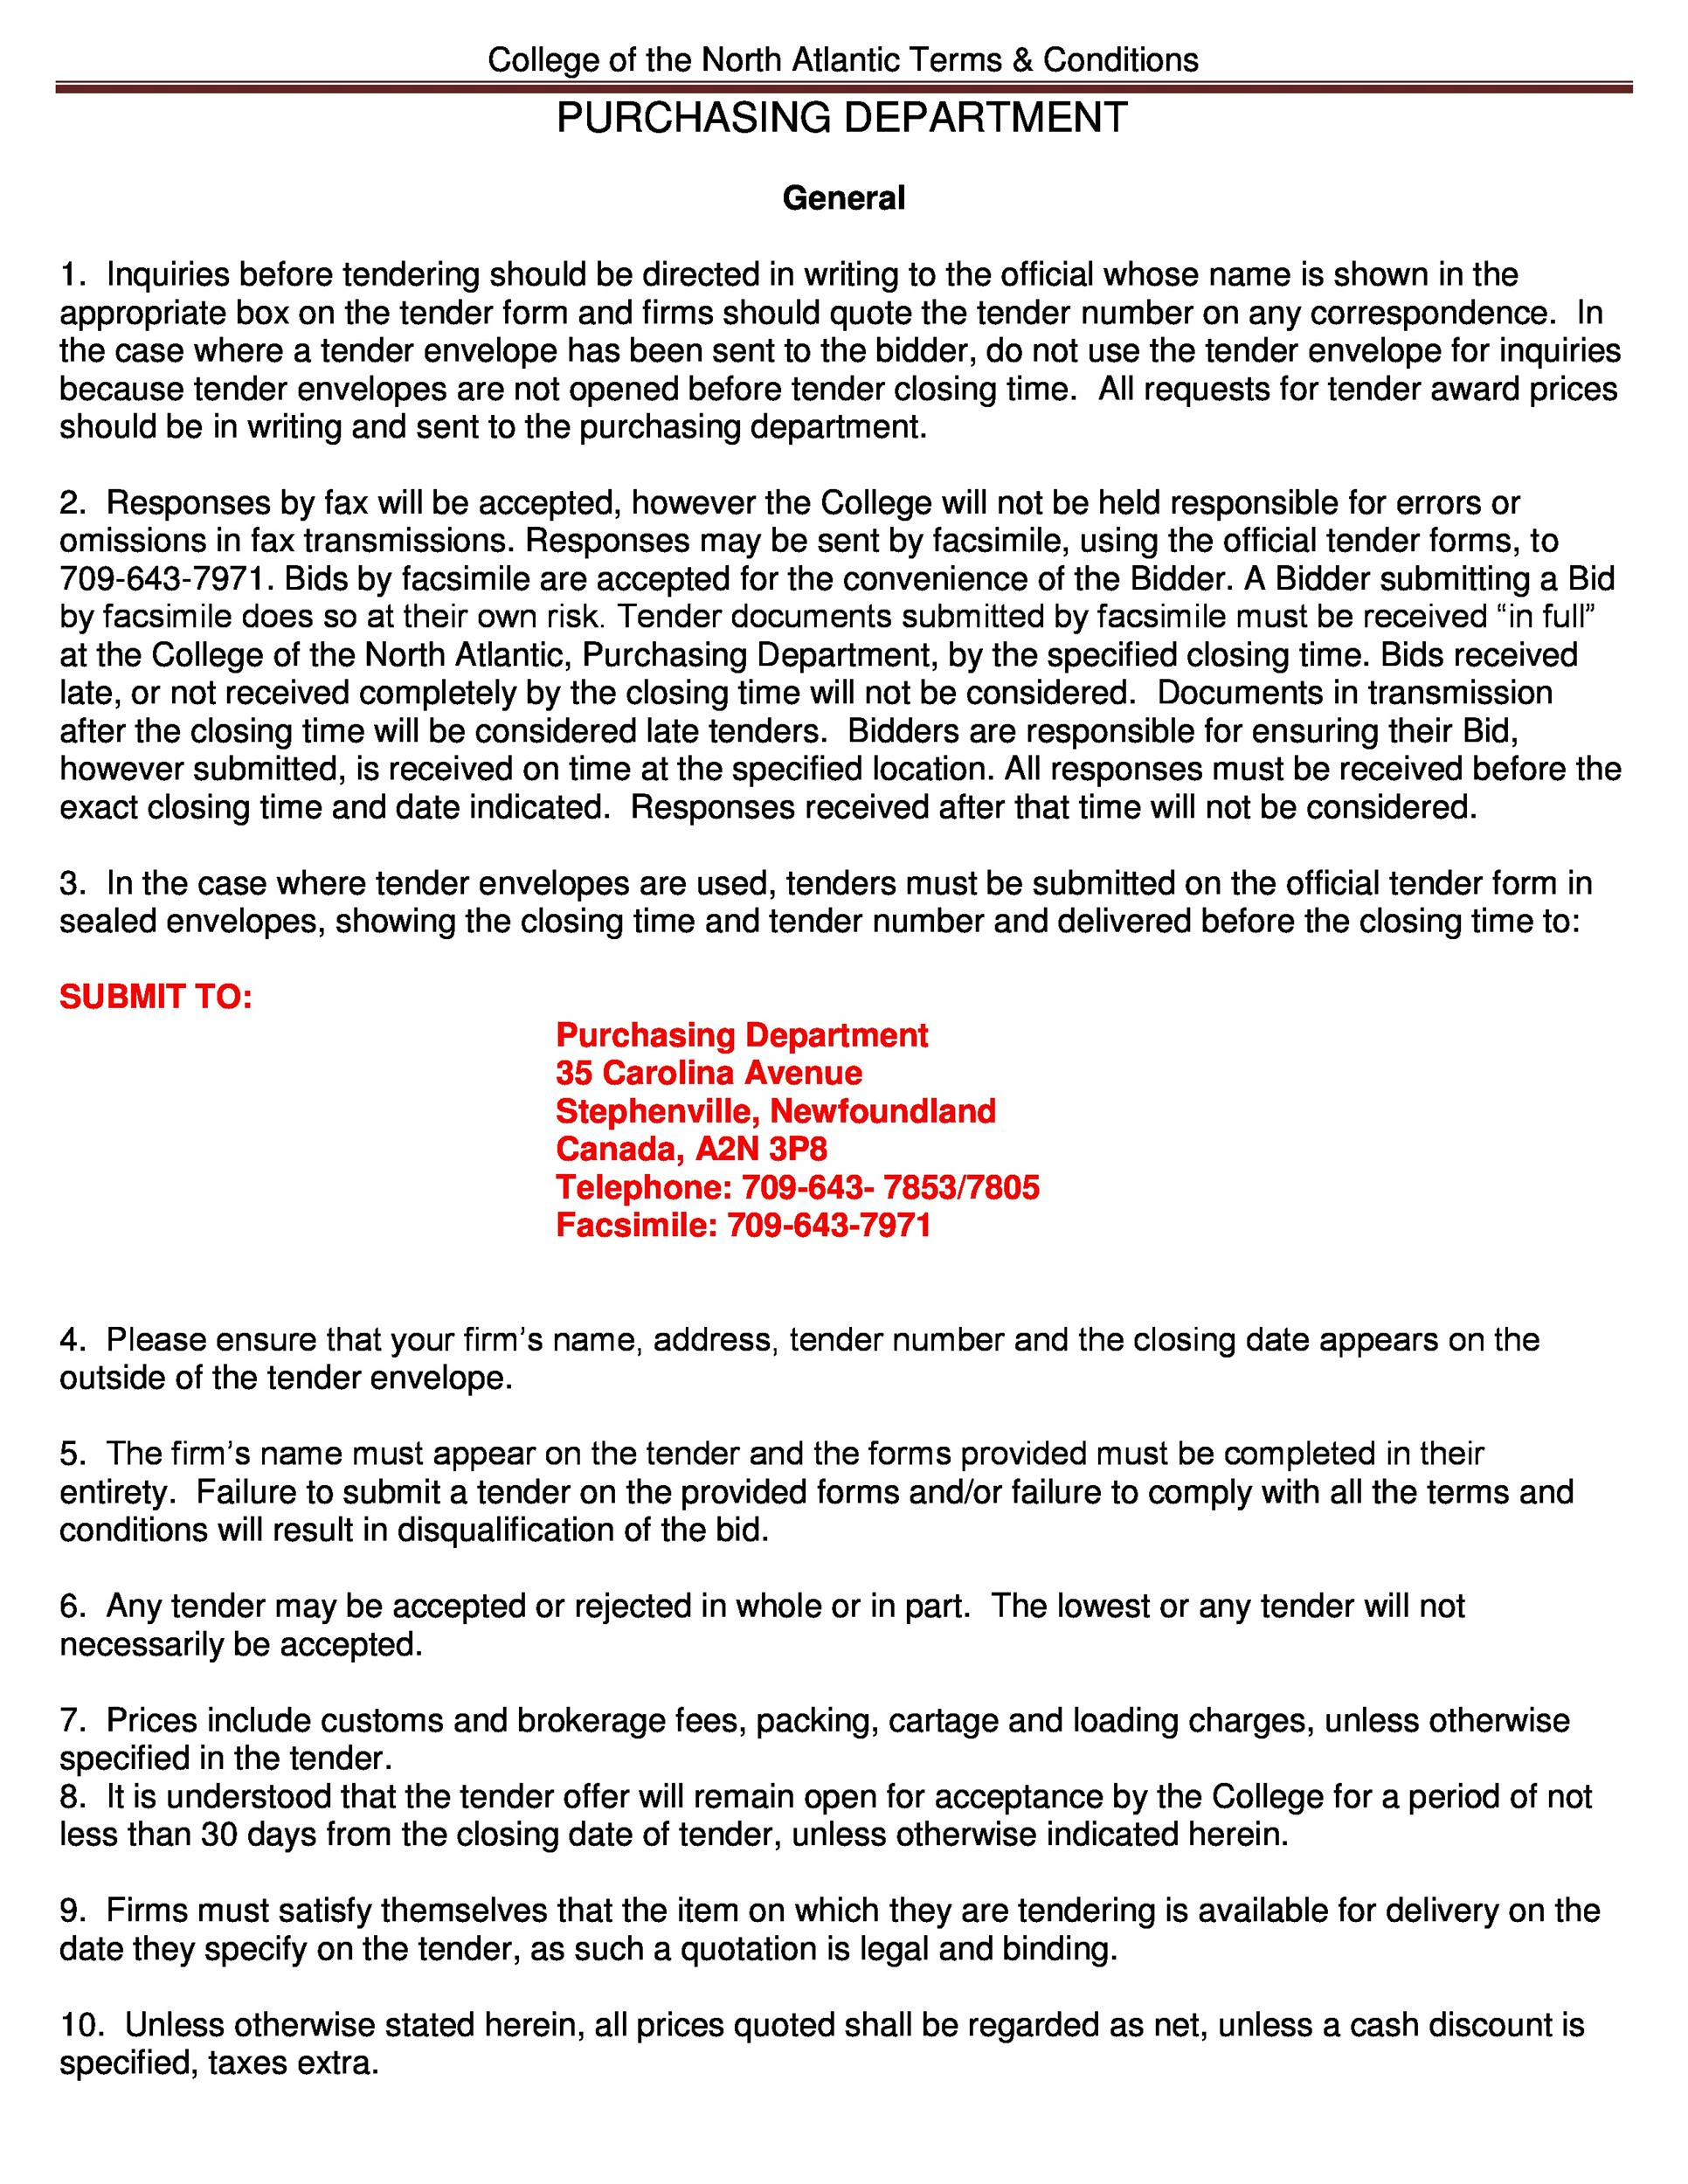 Free terms and conditions template 40